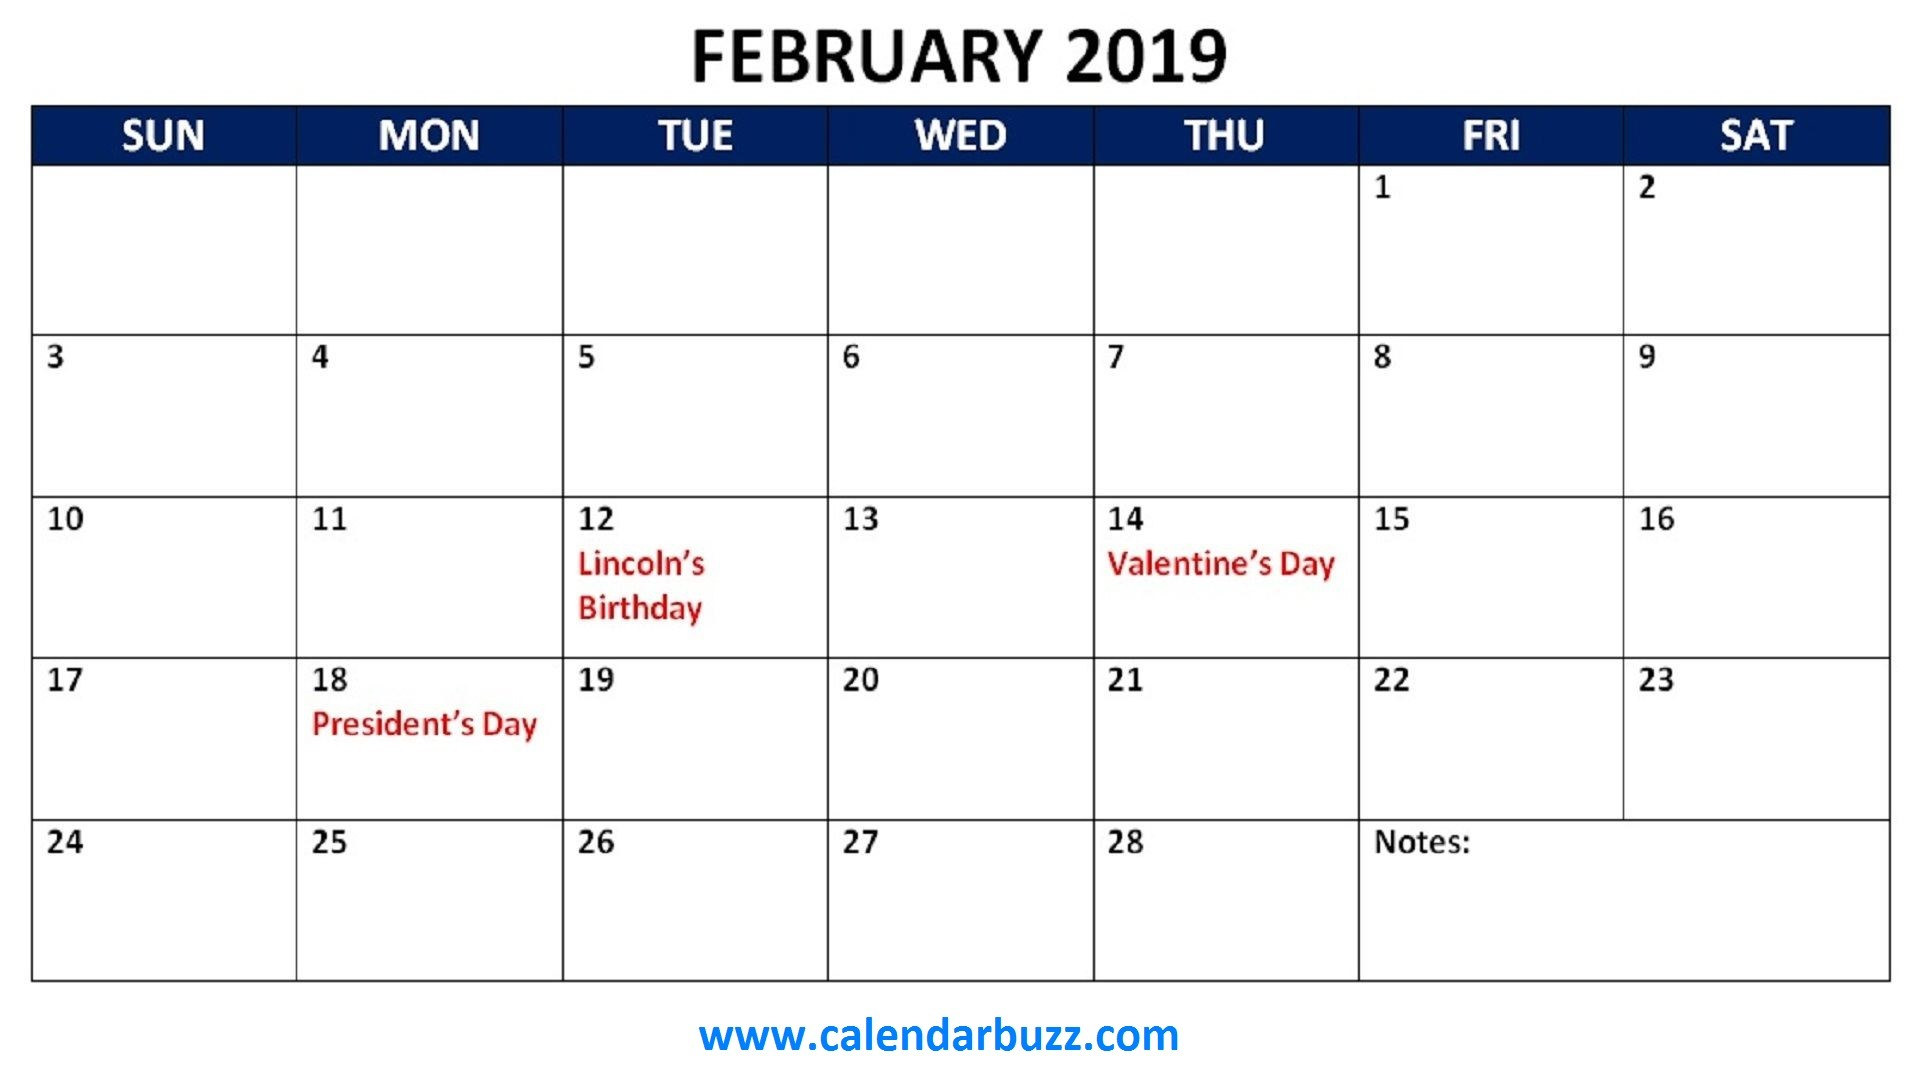 March Calendar Blank 2019 Mejores Y Más Novedosos February 2019 Calendar with Holidays Printable Usa Uk Canada Nz Sa Of March Calendar Blank 2019 Más Recientes Lagunitas Announces 2018 Release Calendar Willitized Coffee Stout